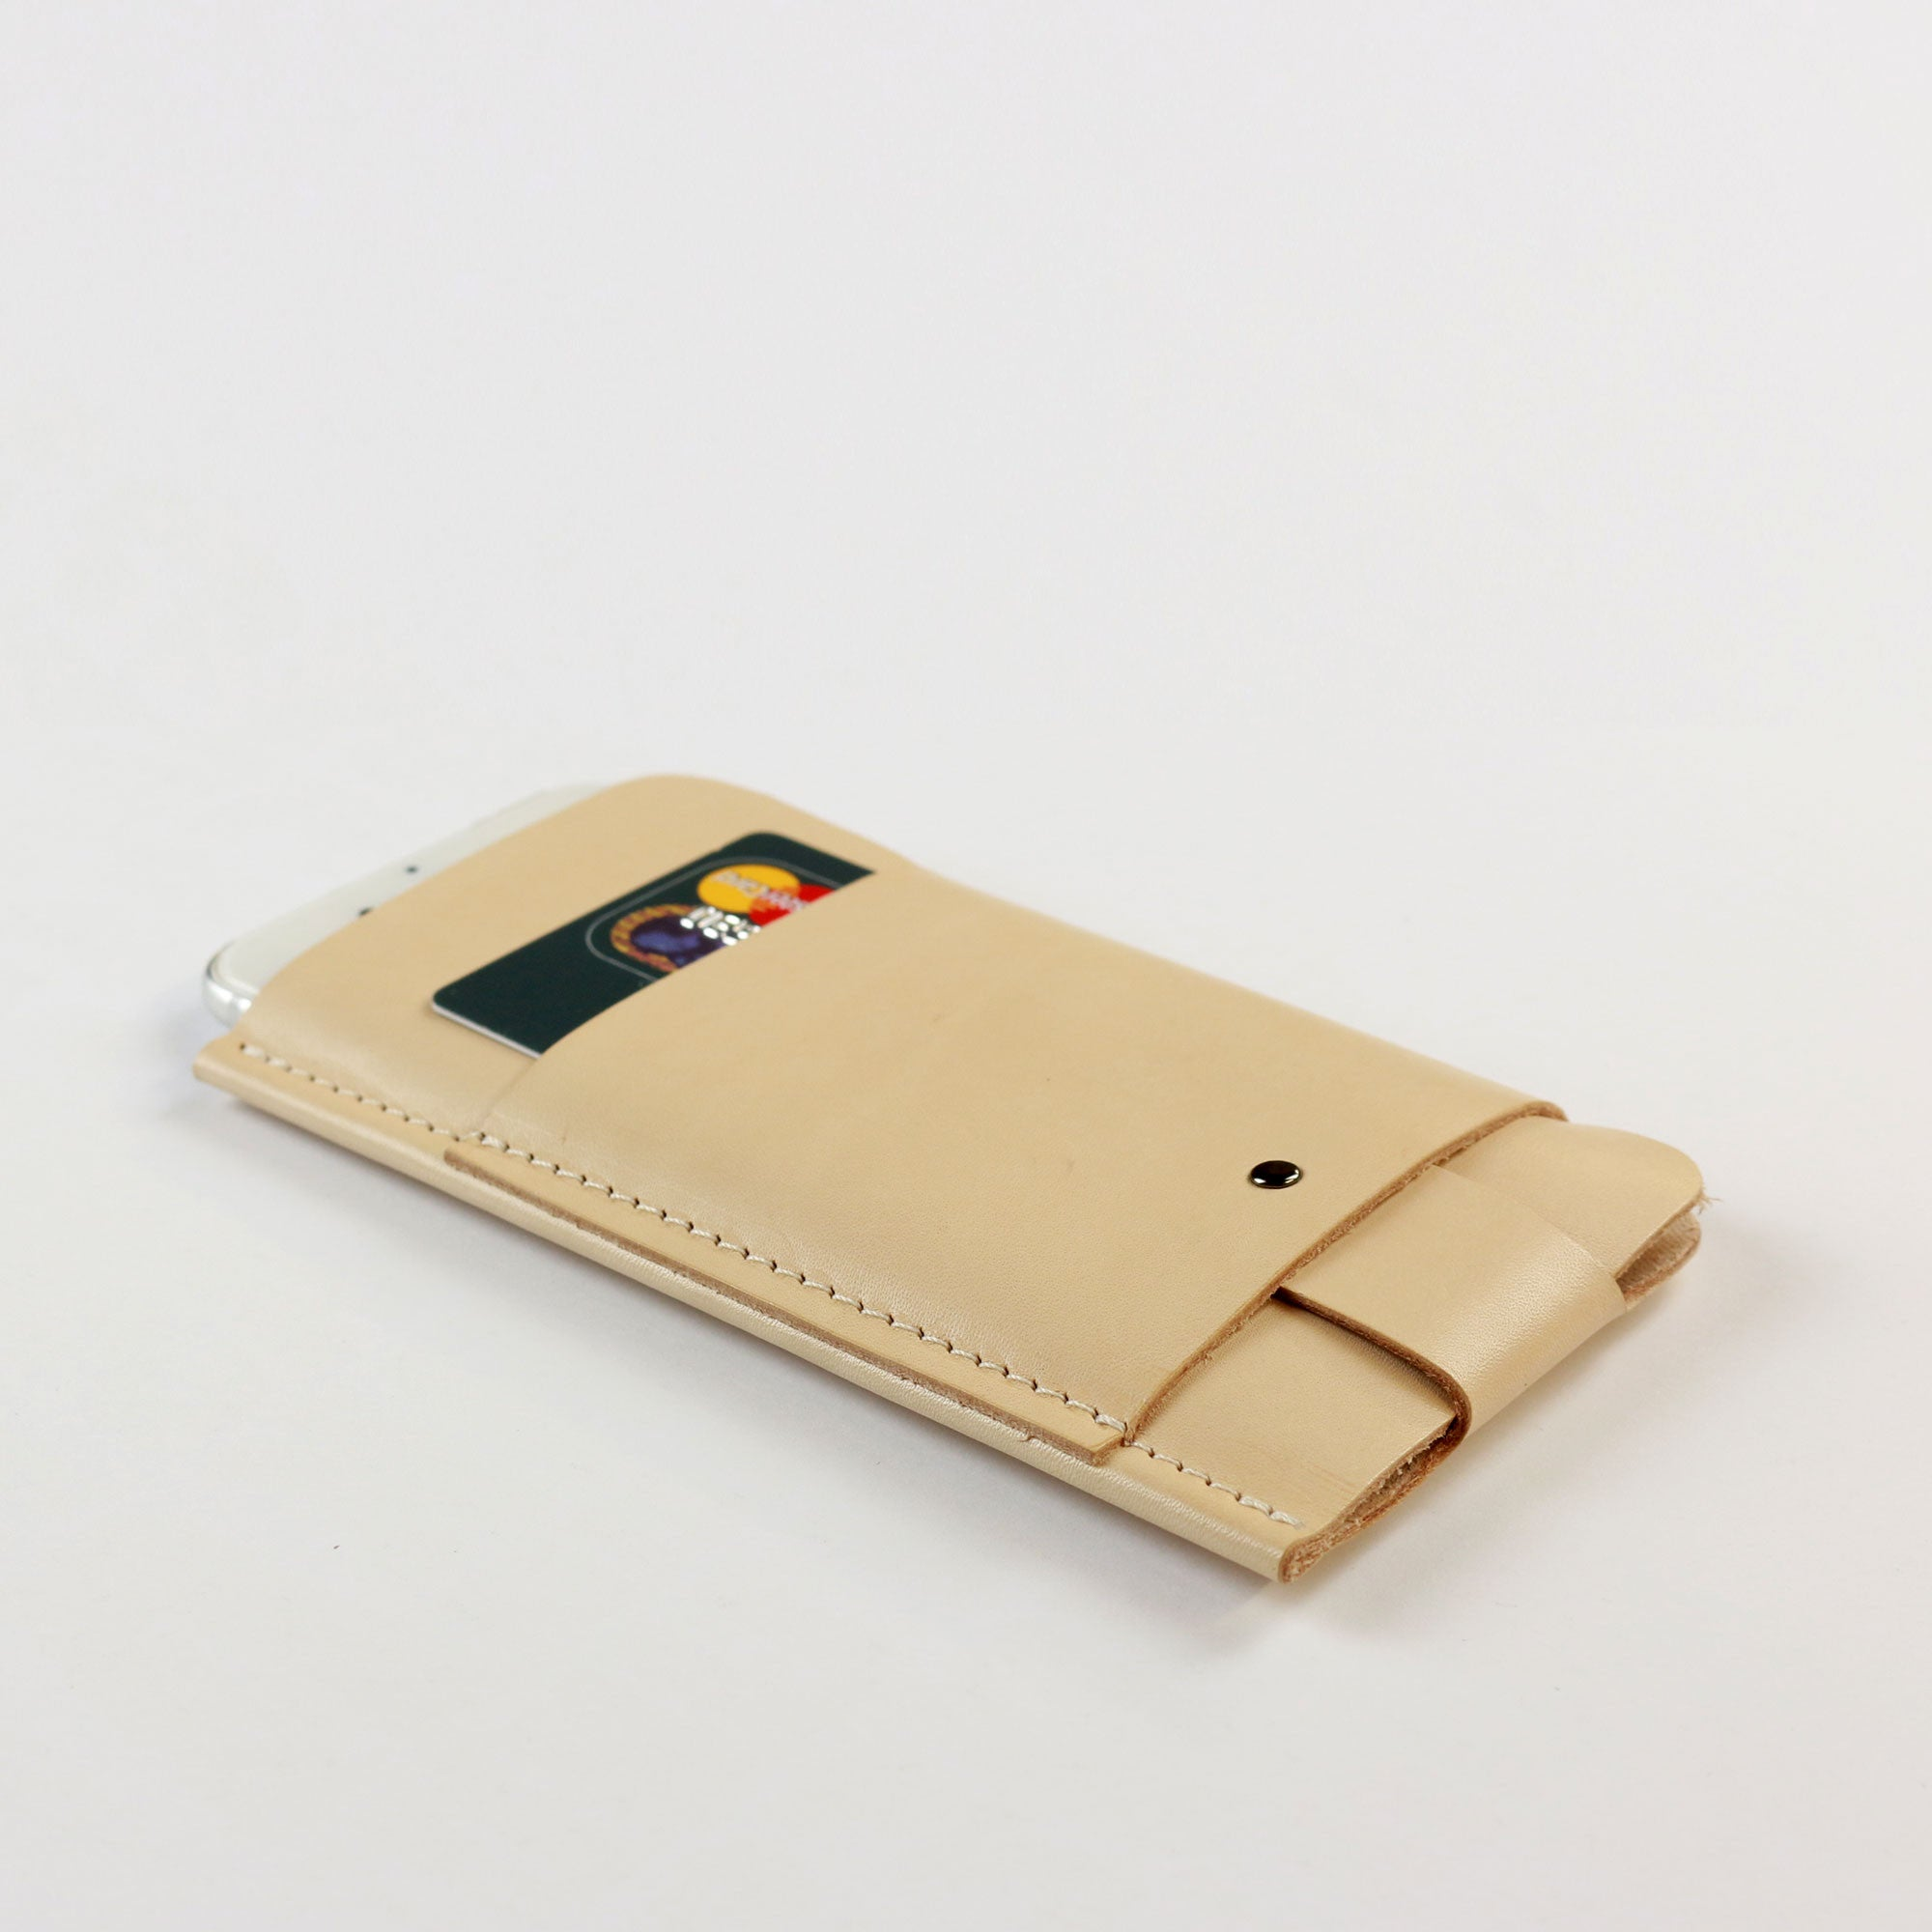 iPhone 5/5S/SE Slim Fit Hülle aus Leder Natur